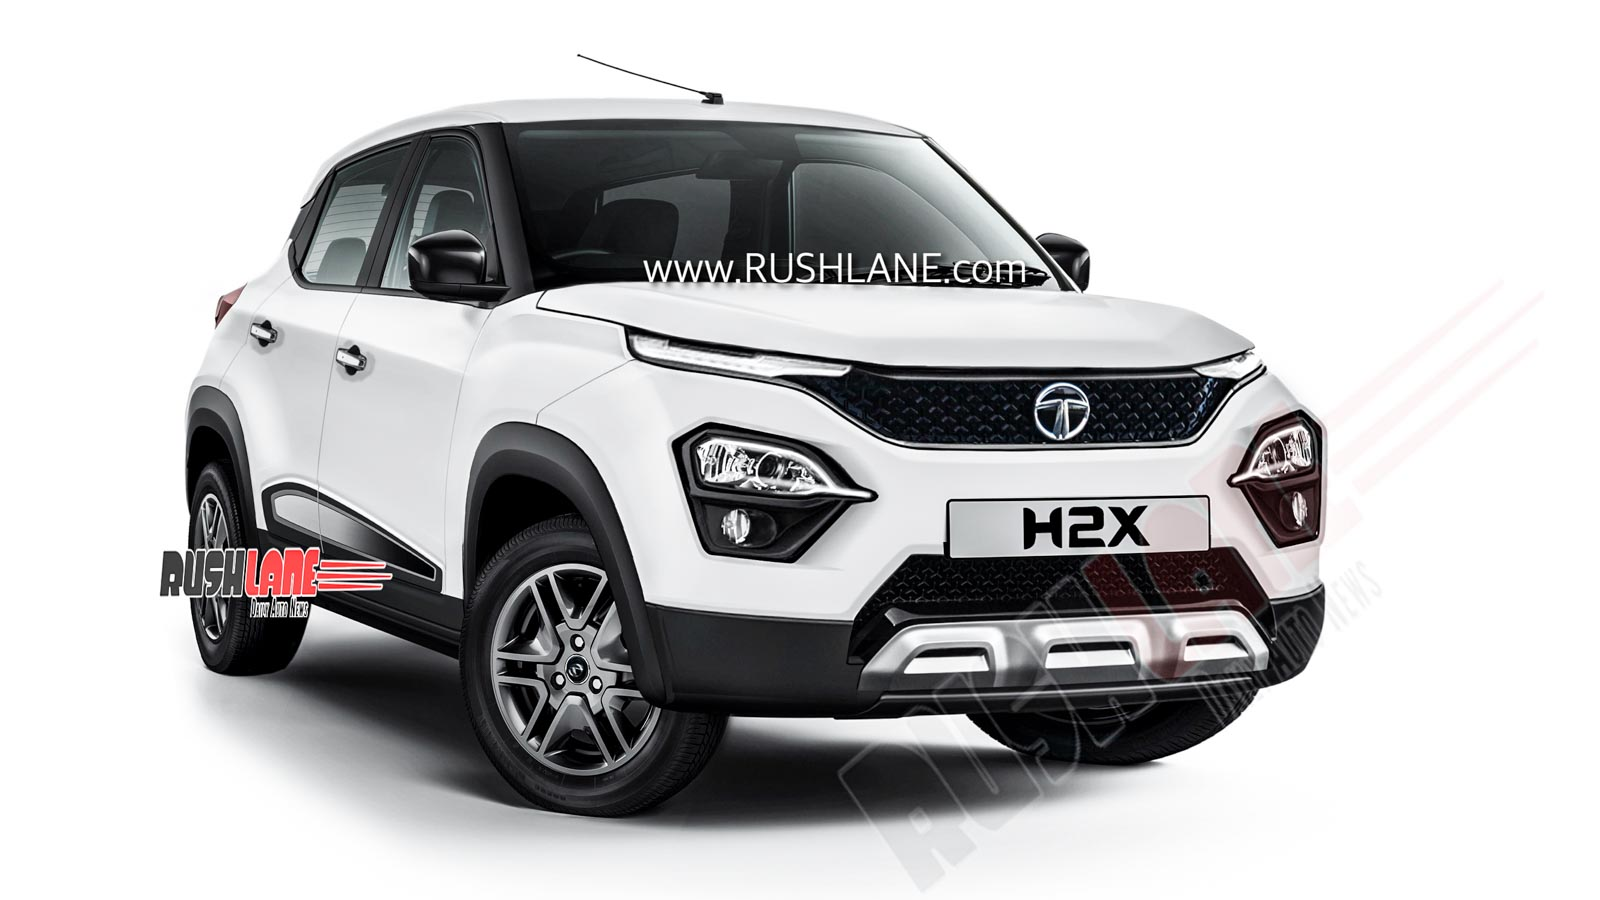 Tata H2X SUV launch